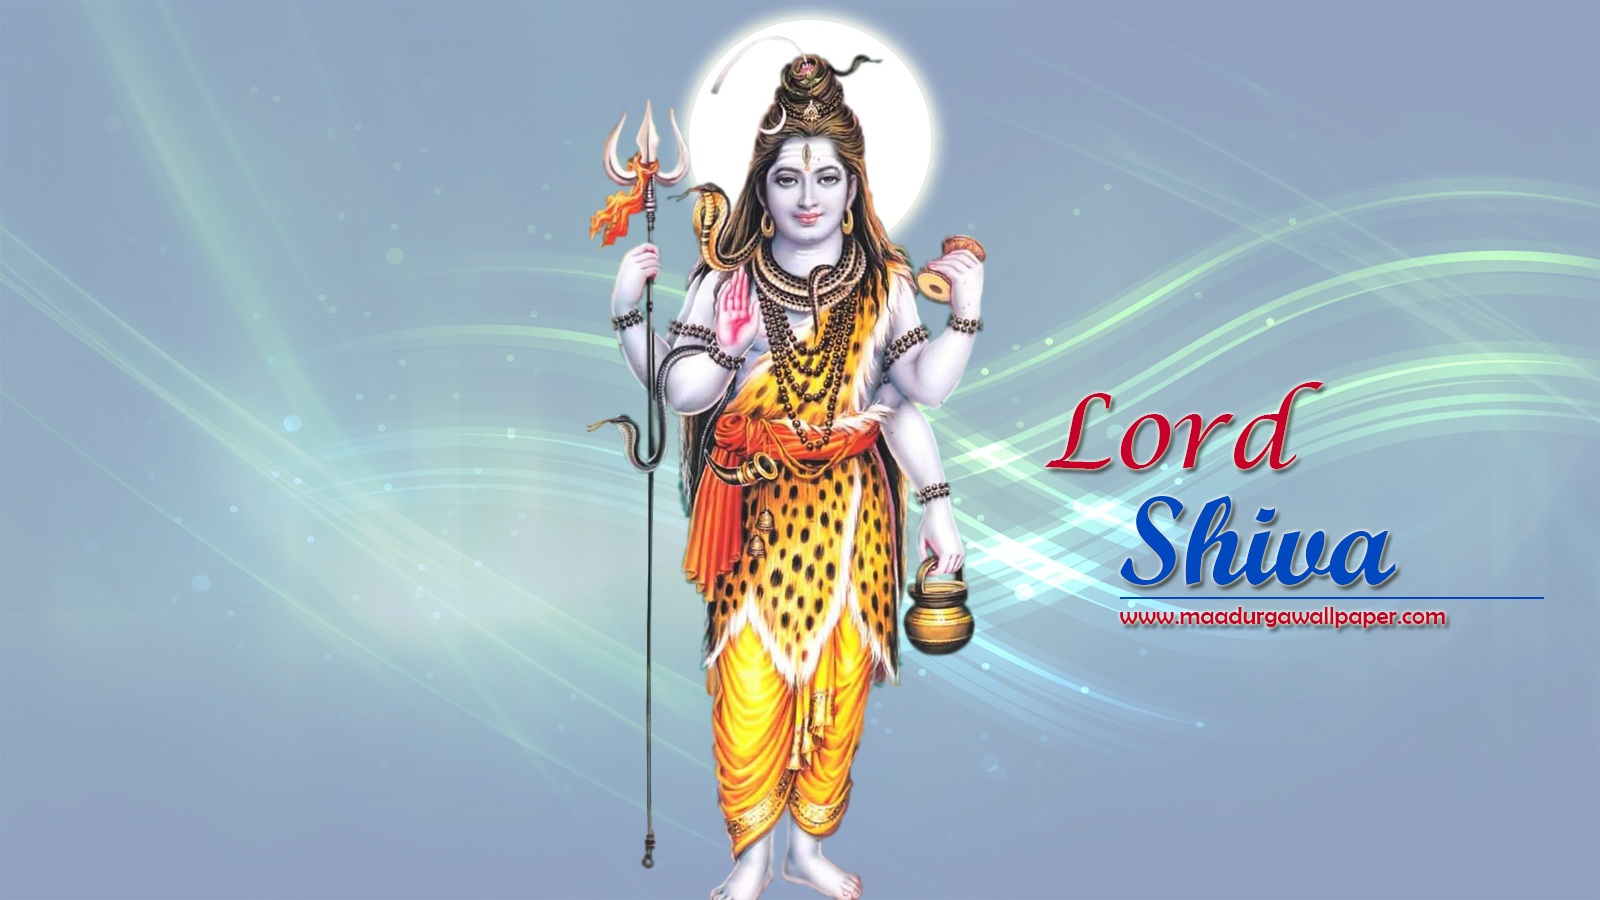 Lord Shiva Animated Wallpaper Download Lord Shiva Wallpaper Full Size Gallery